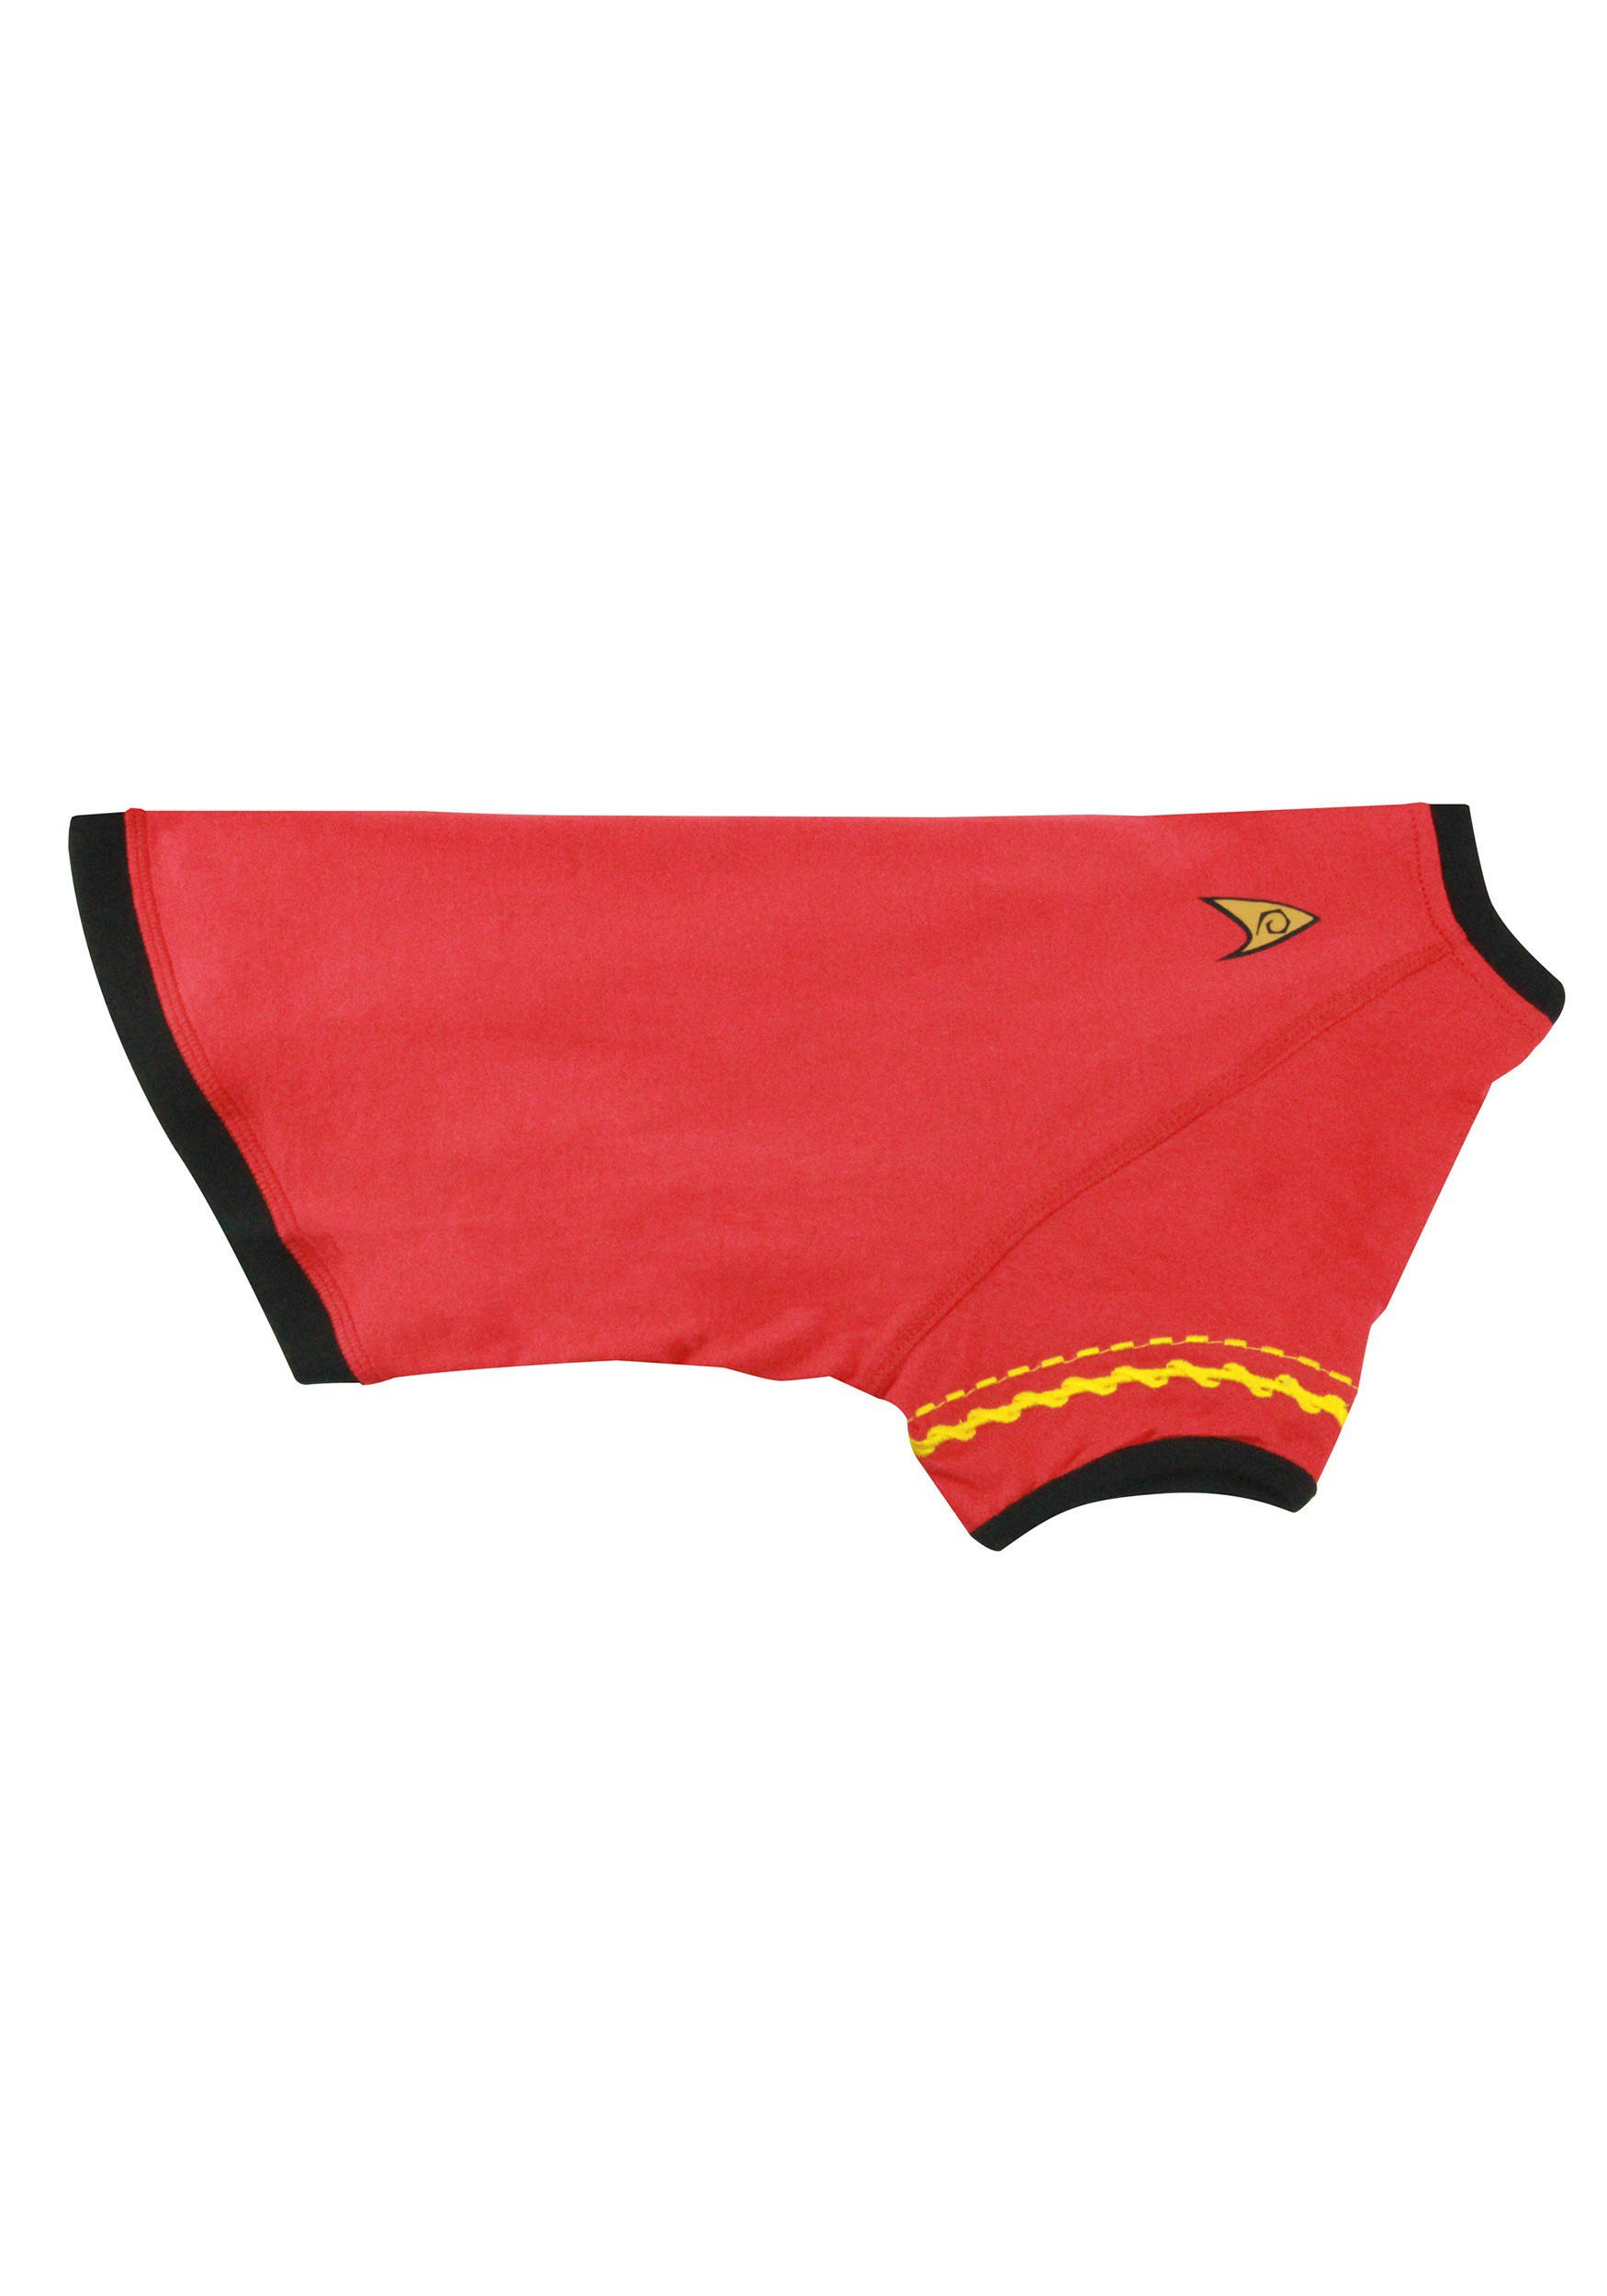 Star Trek Scotty Dog Uniform